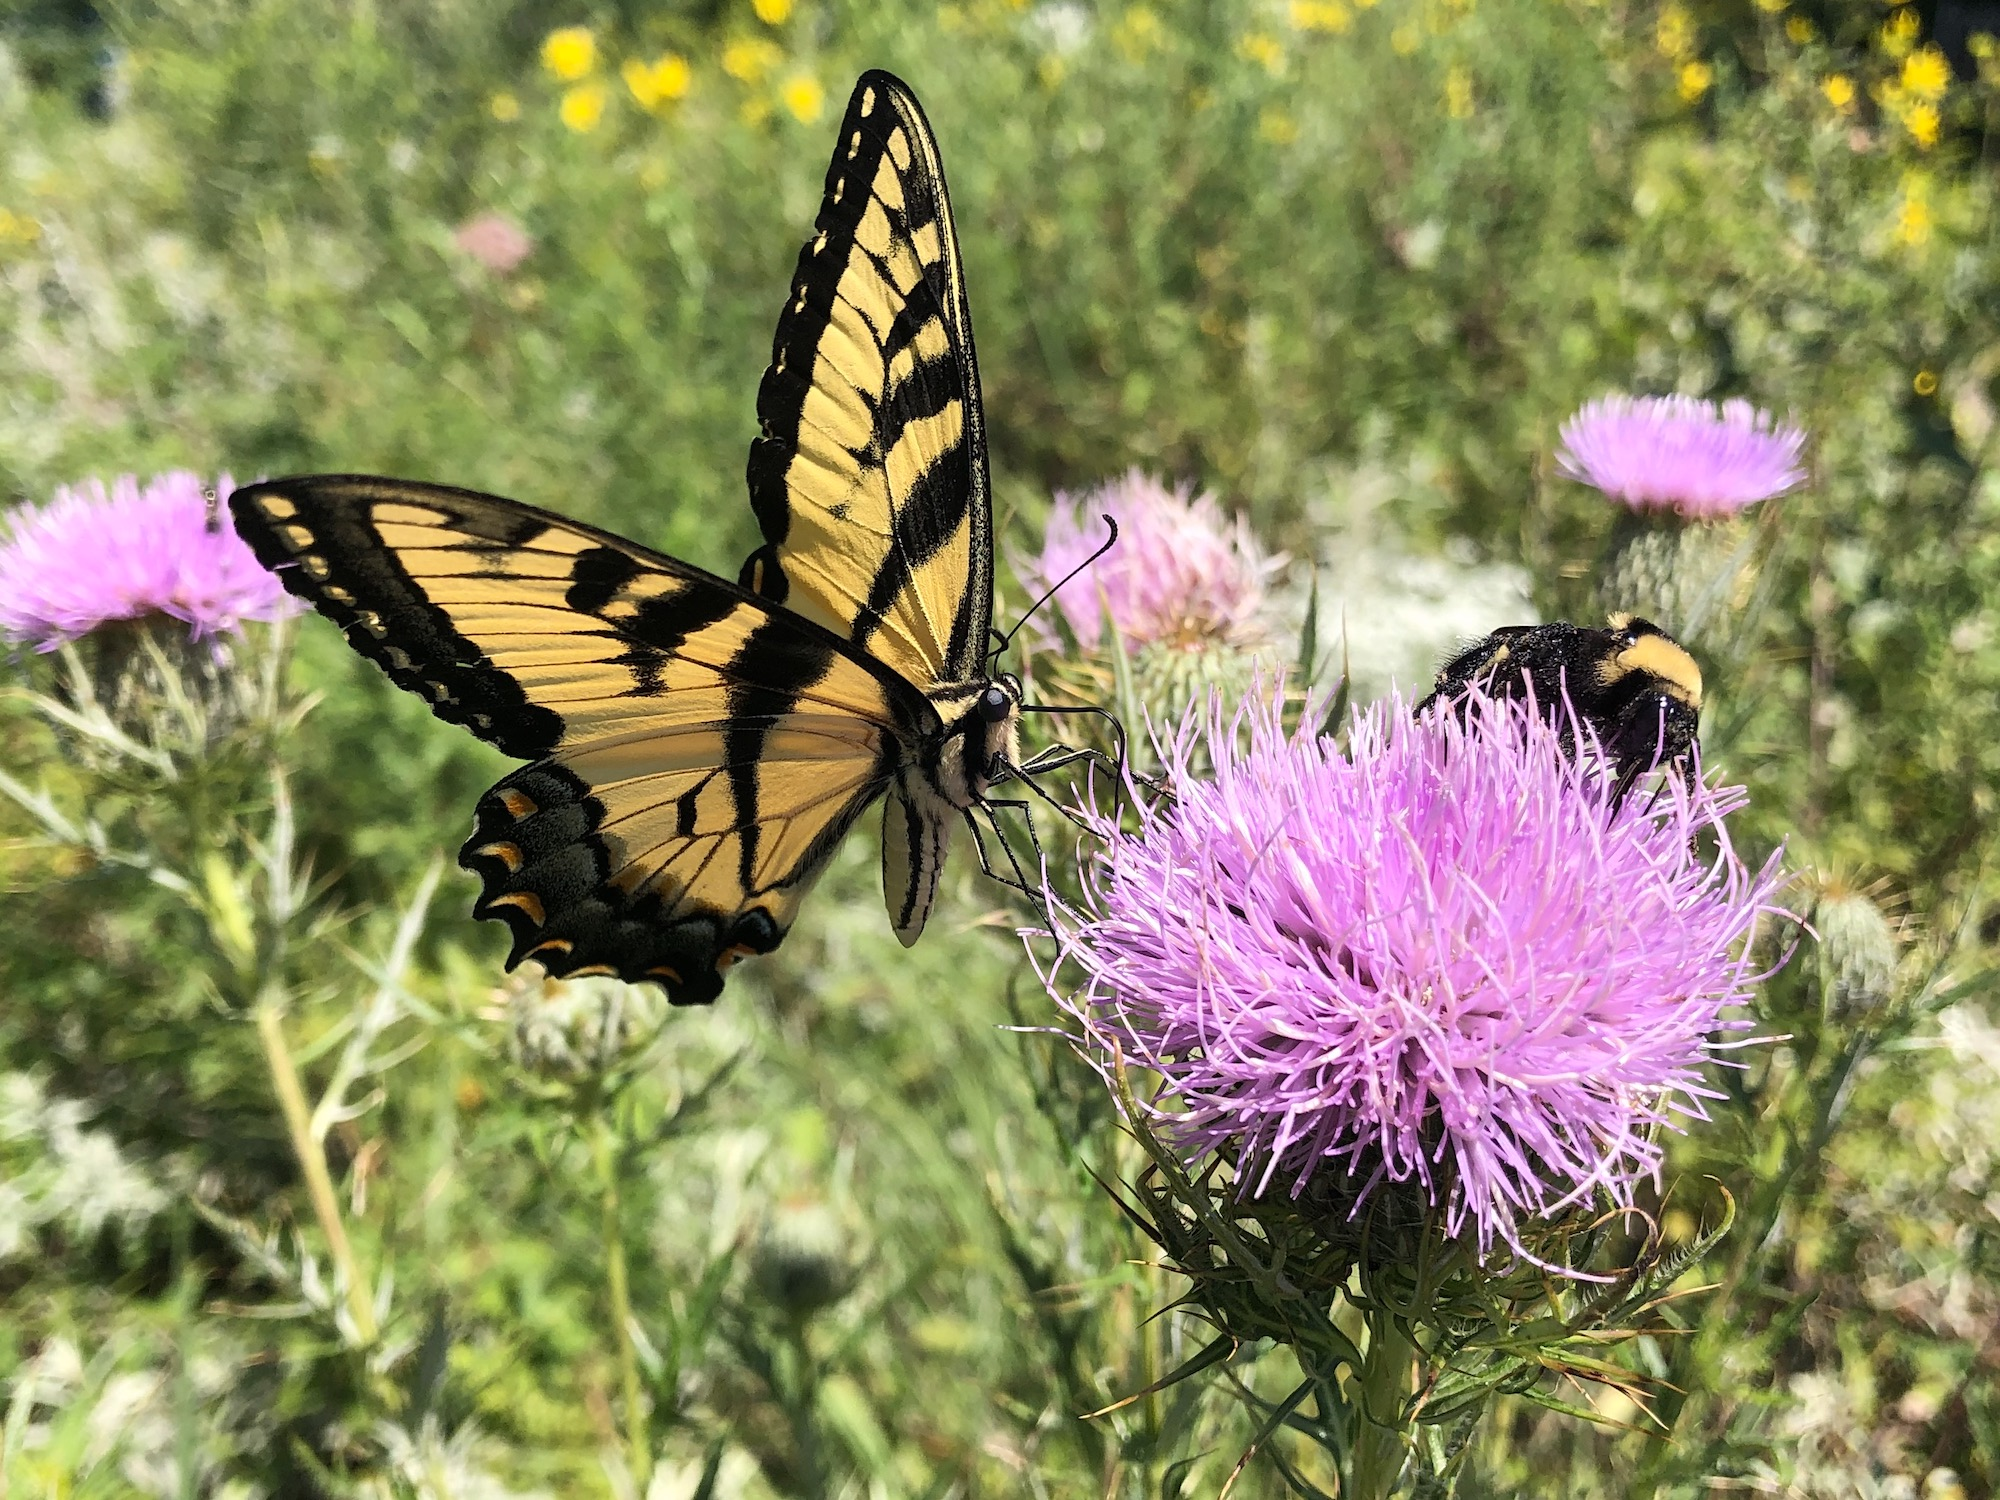 Tiger Swallowtail and bumblebee on Thistle on August 16, 2020.